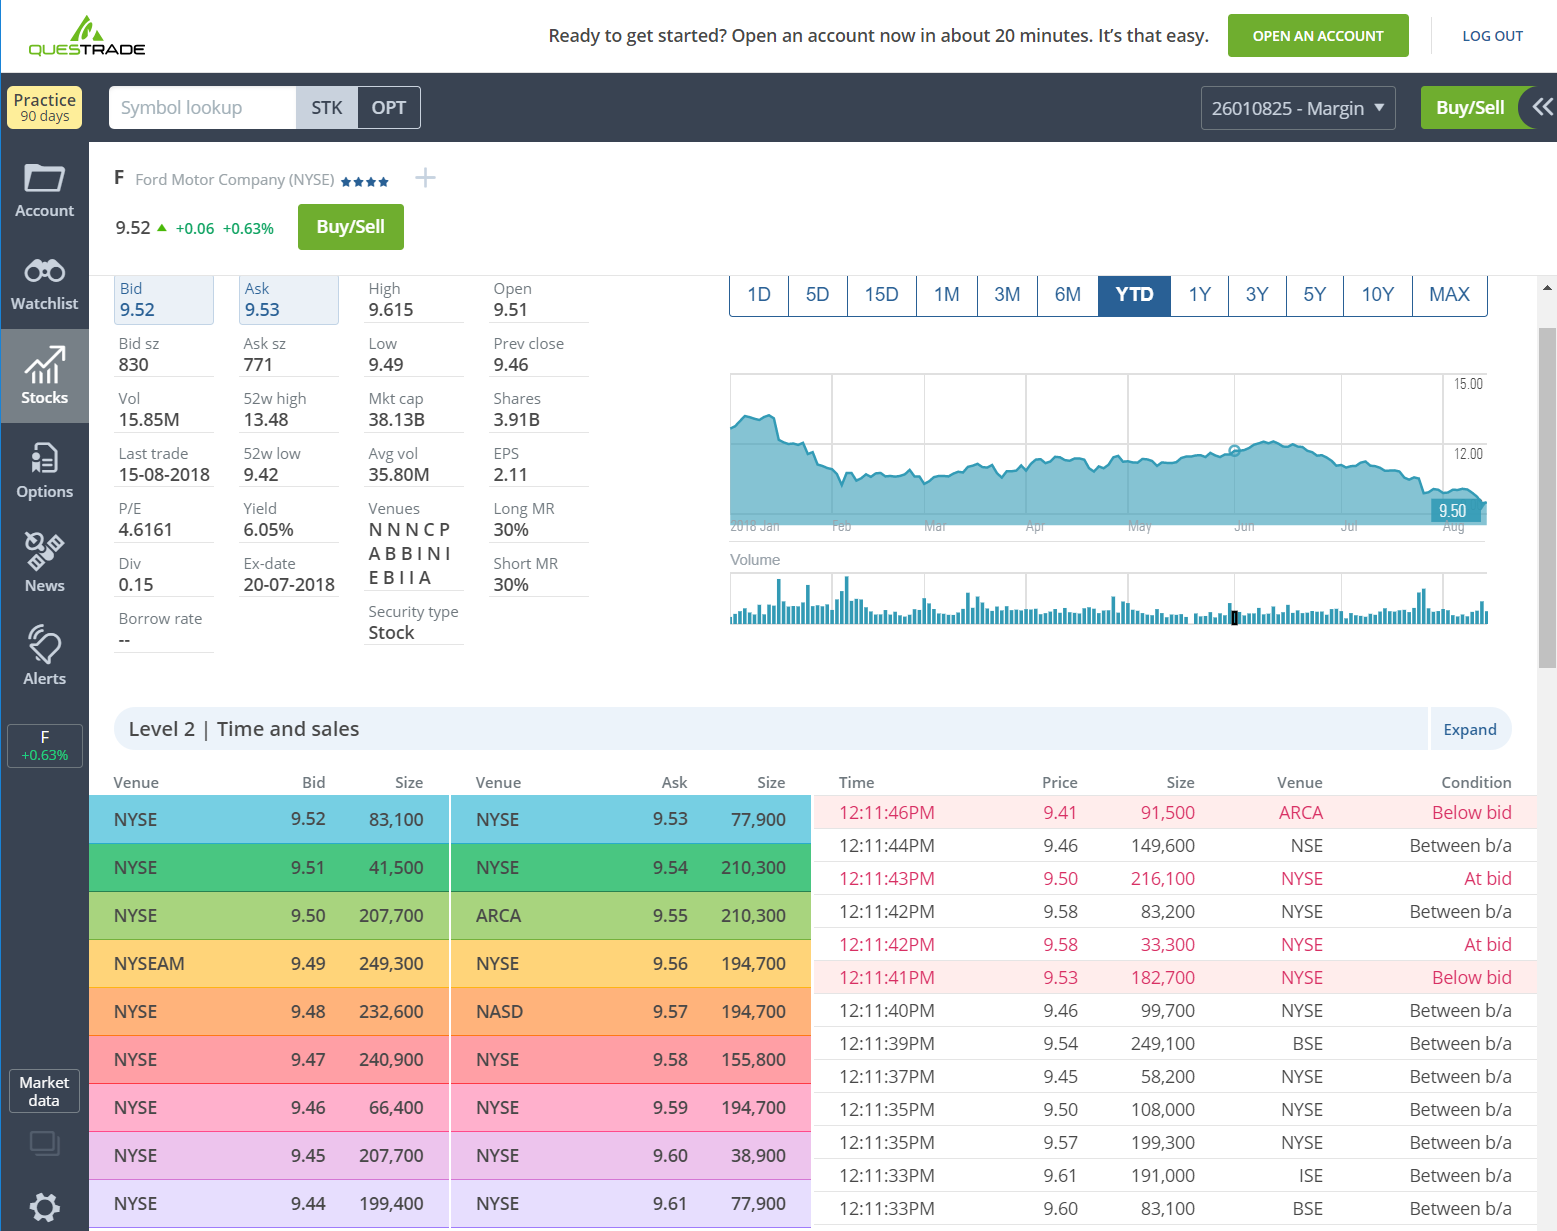 Questrade Tutorial: How To Use The Trading Platform